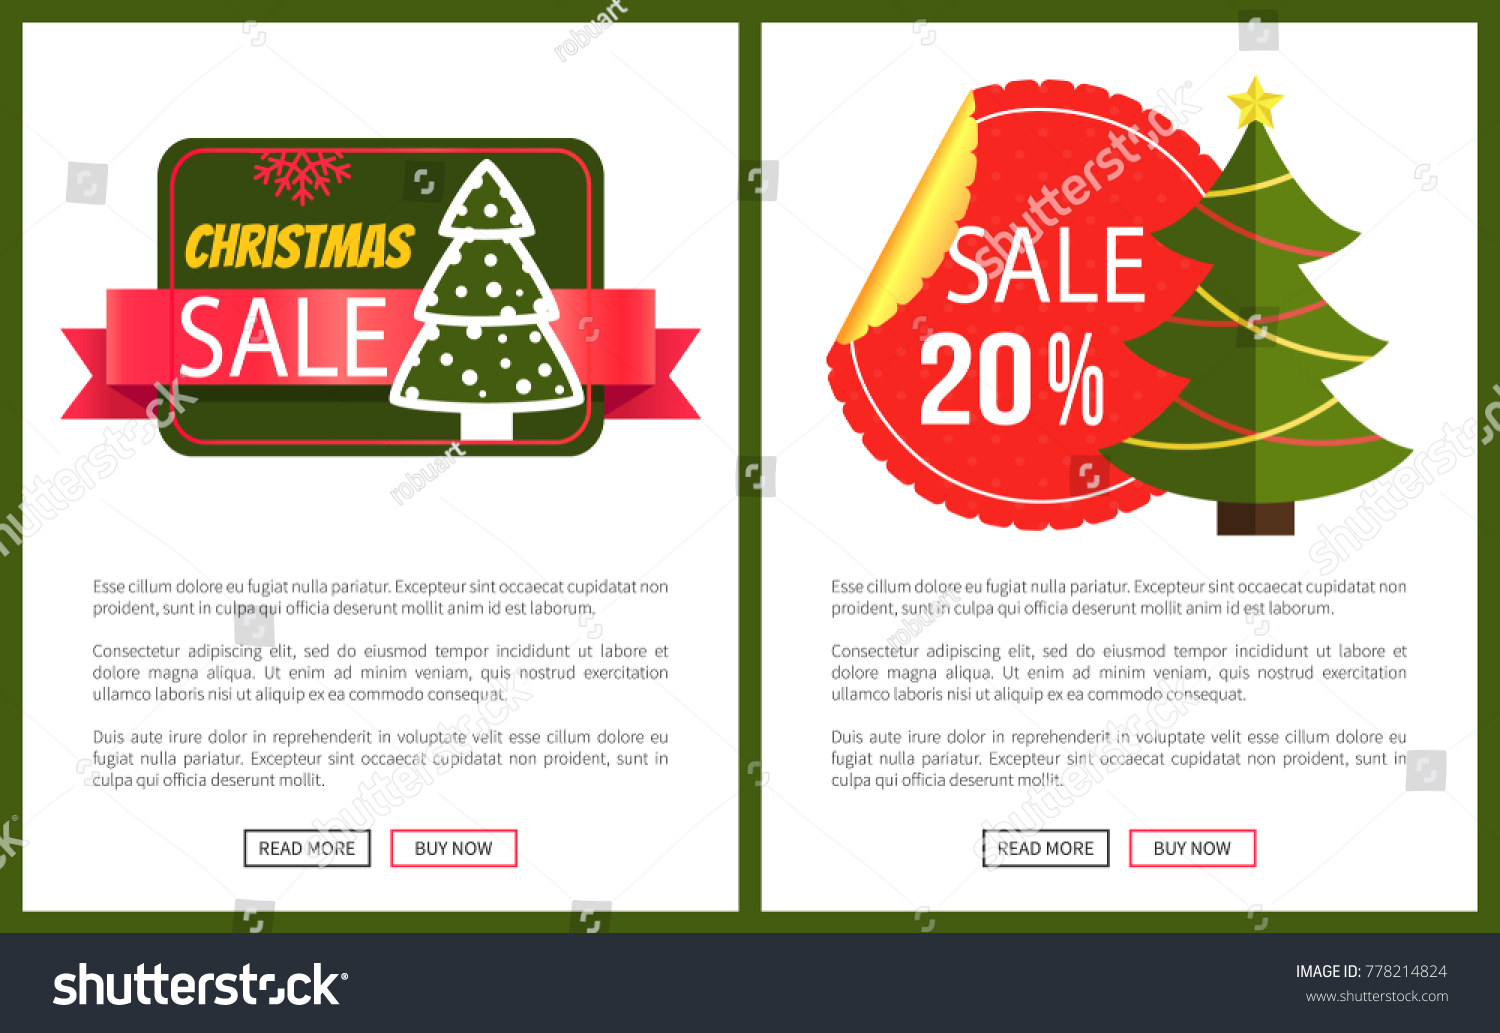 Two Best Christmas Sale Cards Vector Stock Vector (Royalty Free ...